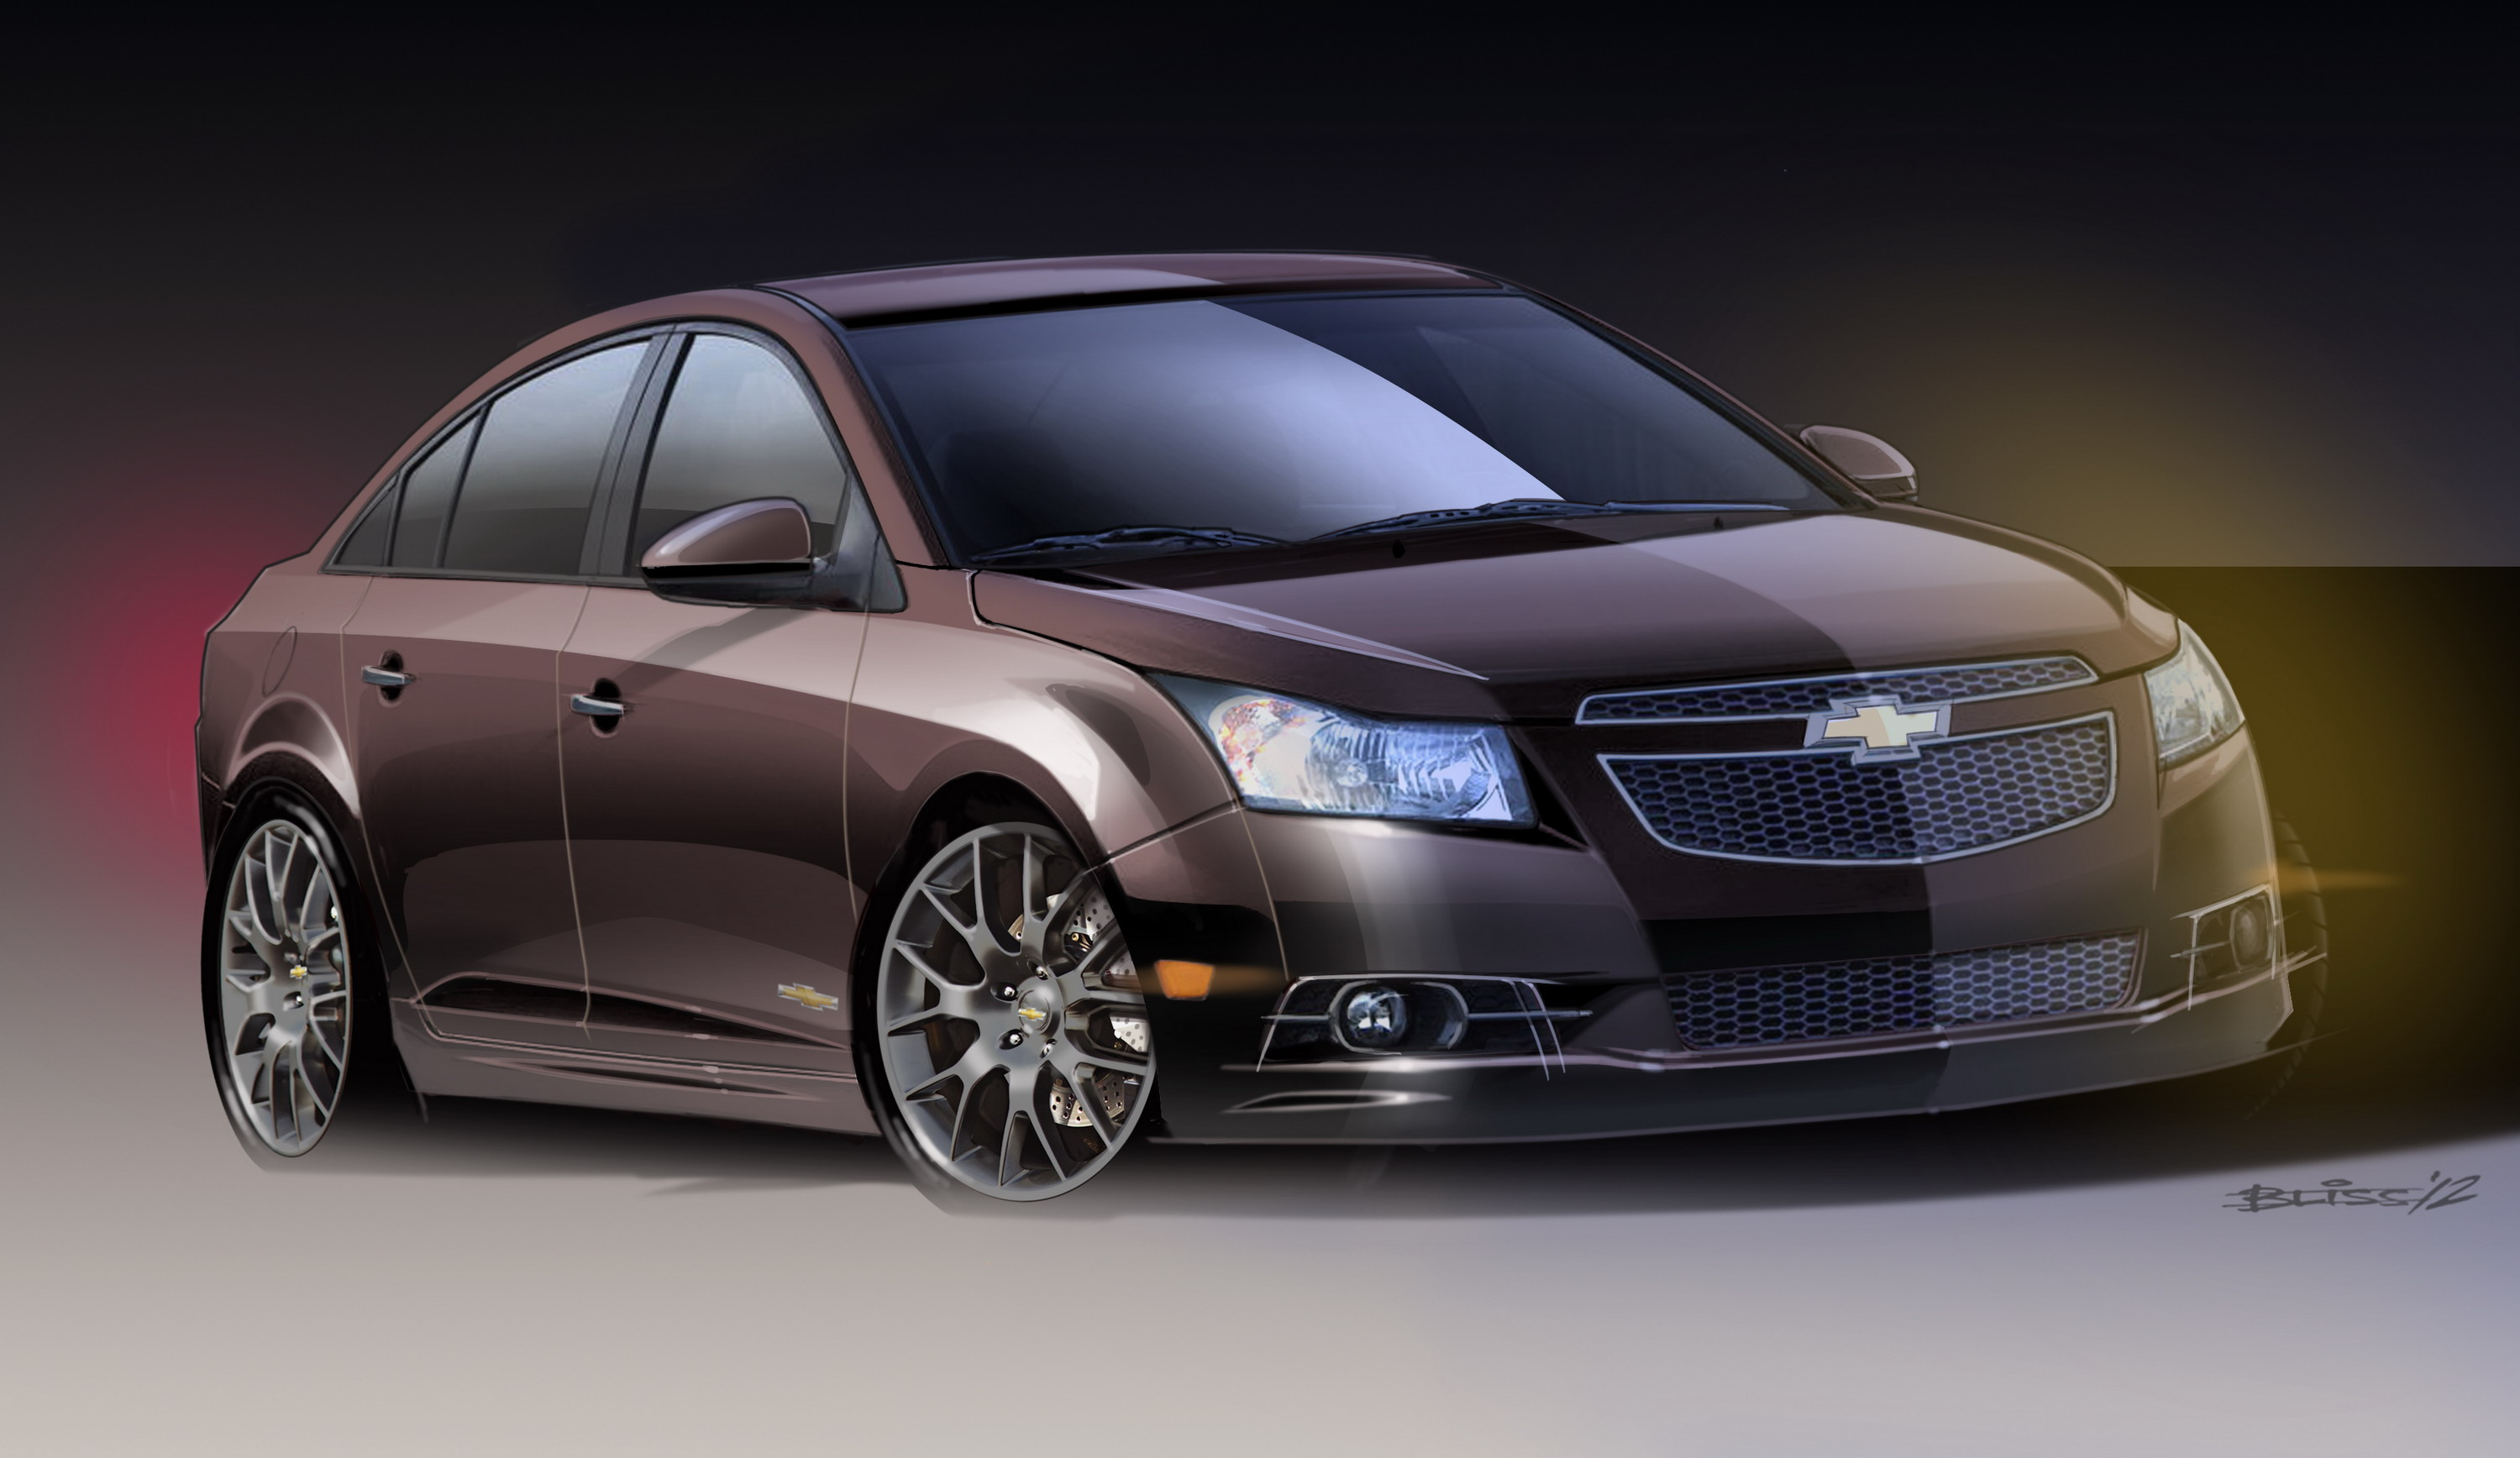 2013 Chevrolet Cruze Upscale Concept Review Top Speed